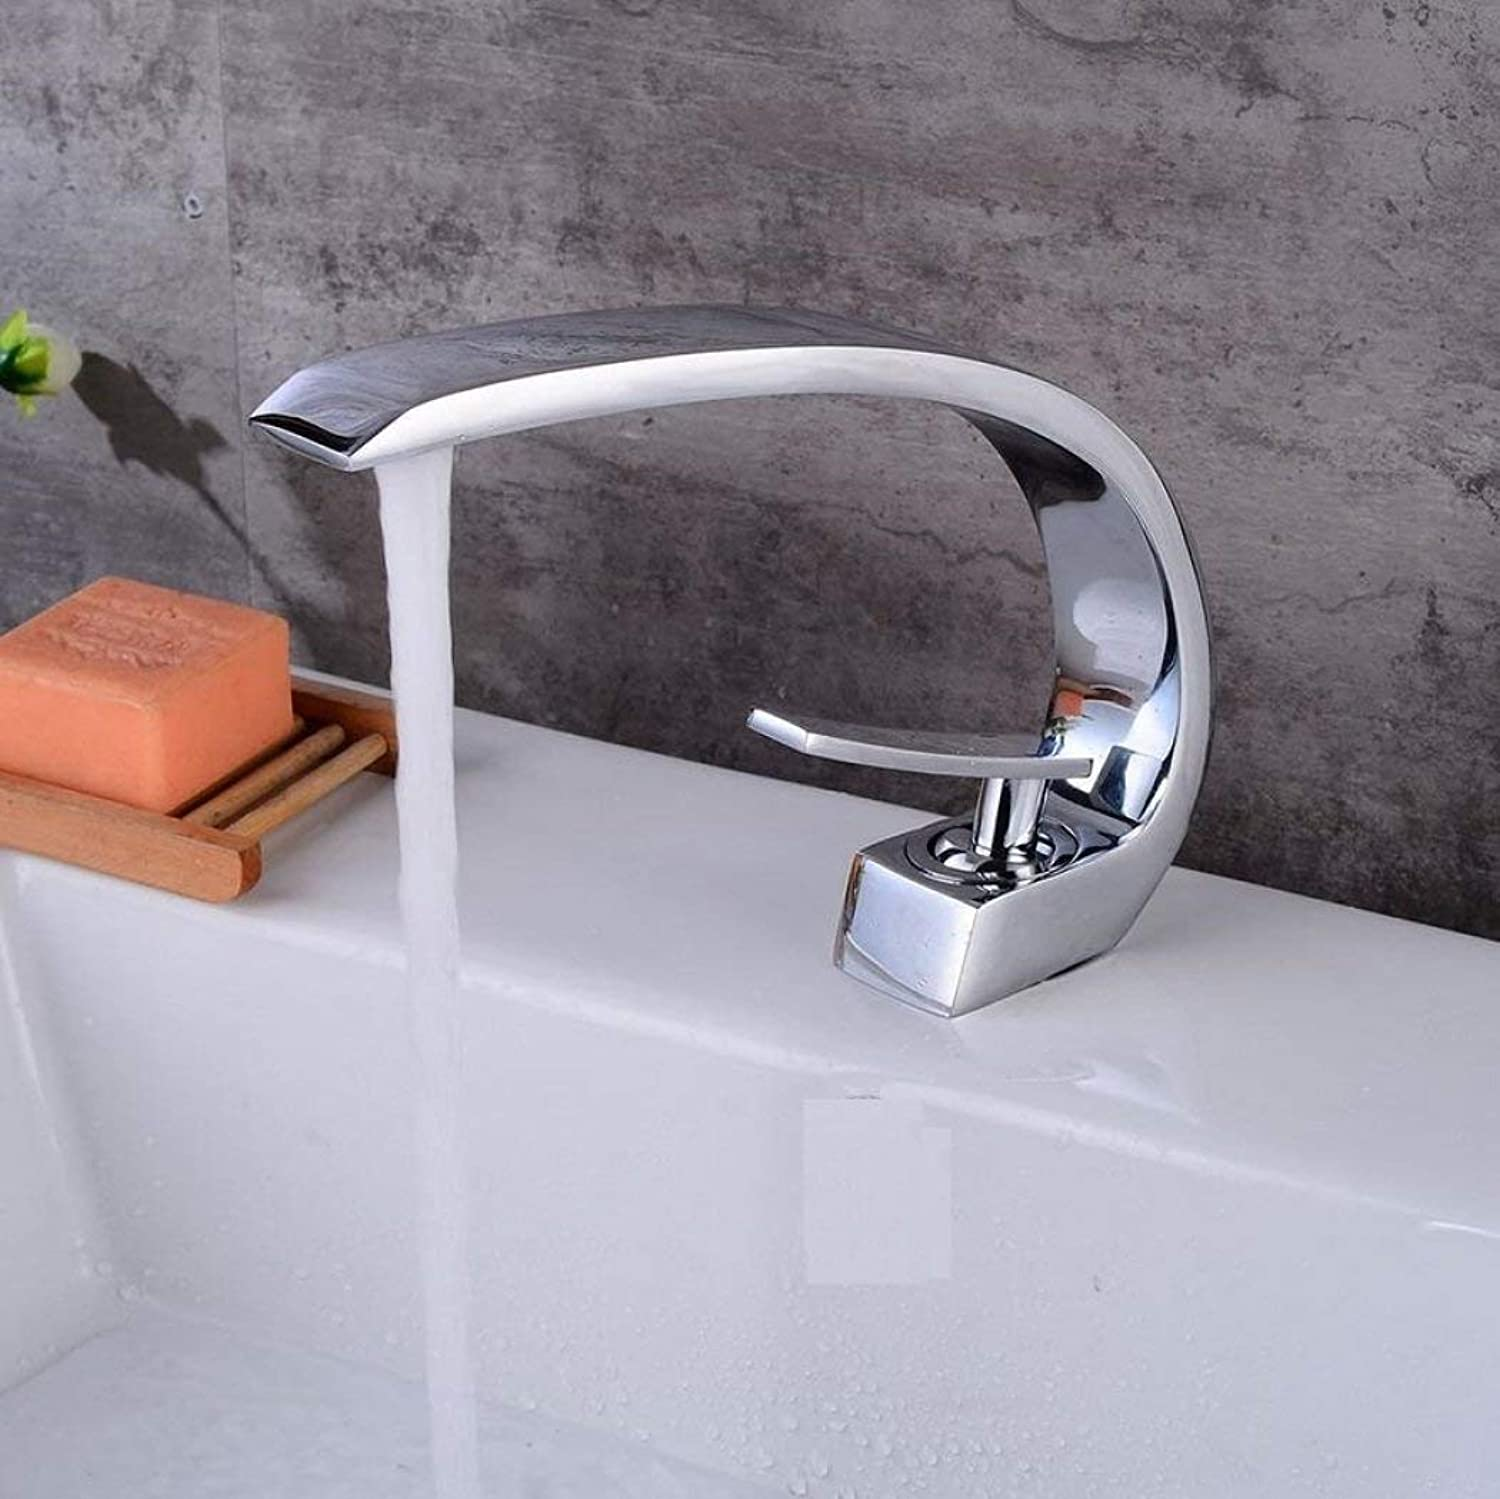 Bathroom Kitchen Sink Faucet,Silver Modern Design C Shape Single Handle Cold and Hot Mixing Faucet.